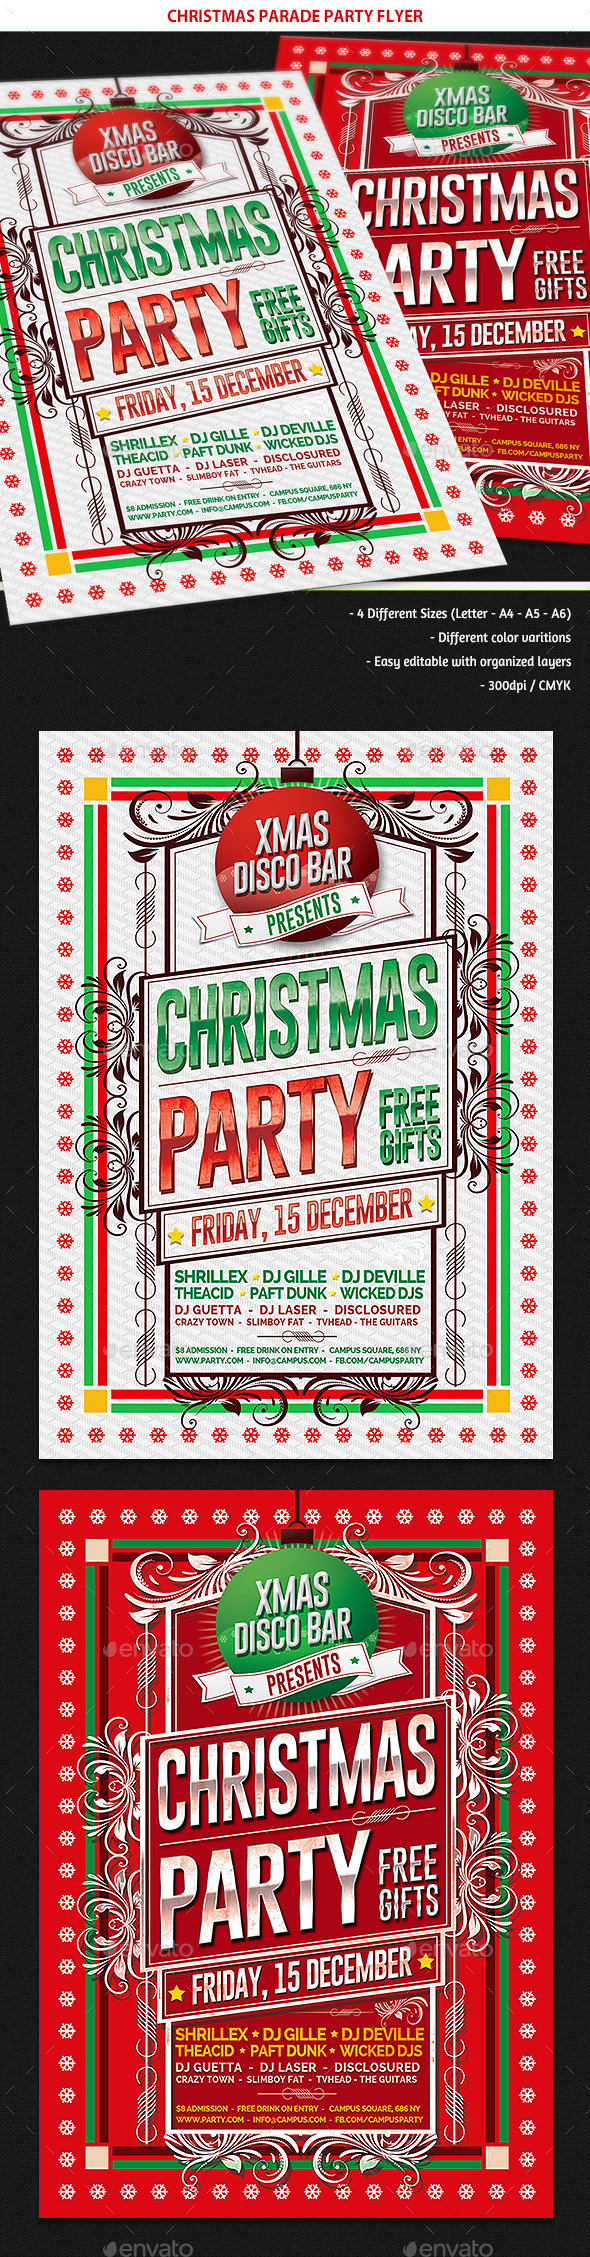 GraphicRiver Christmas Parade Party Flyer 9493384